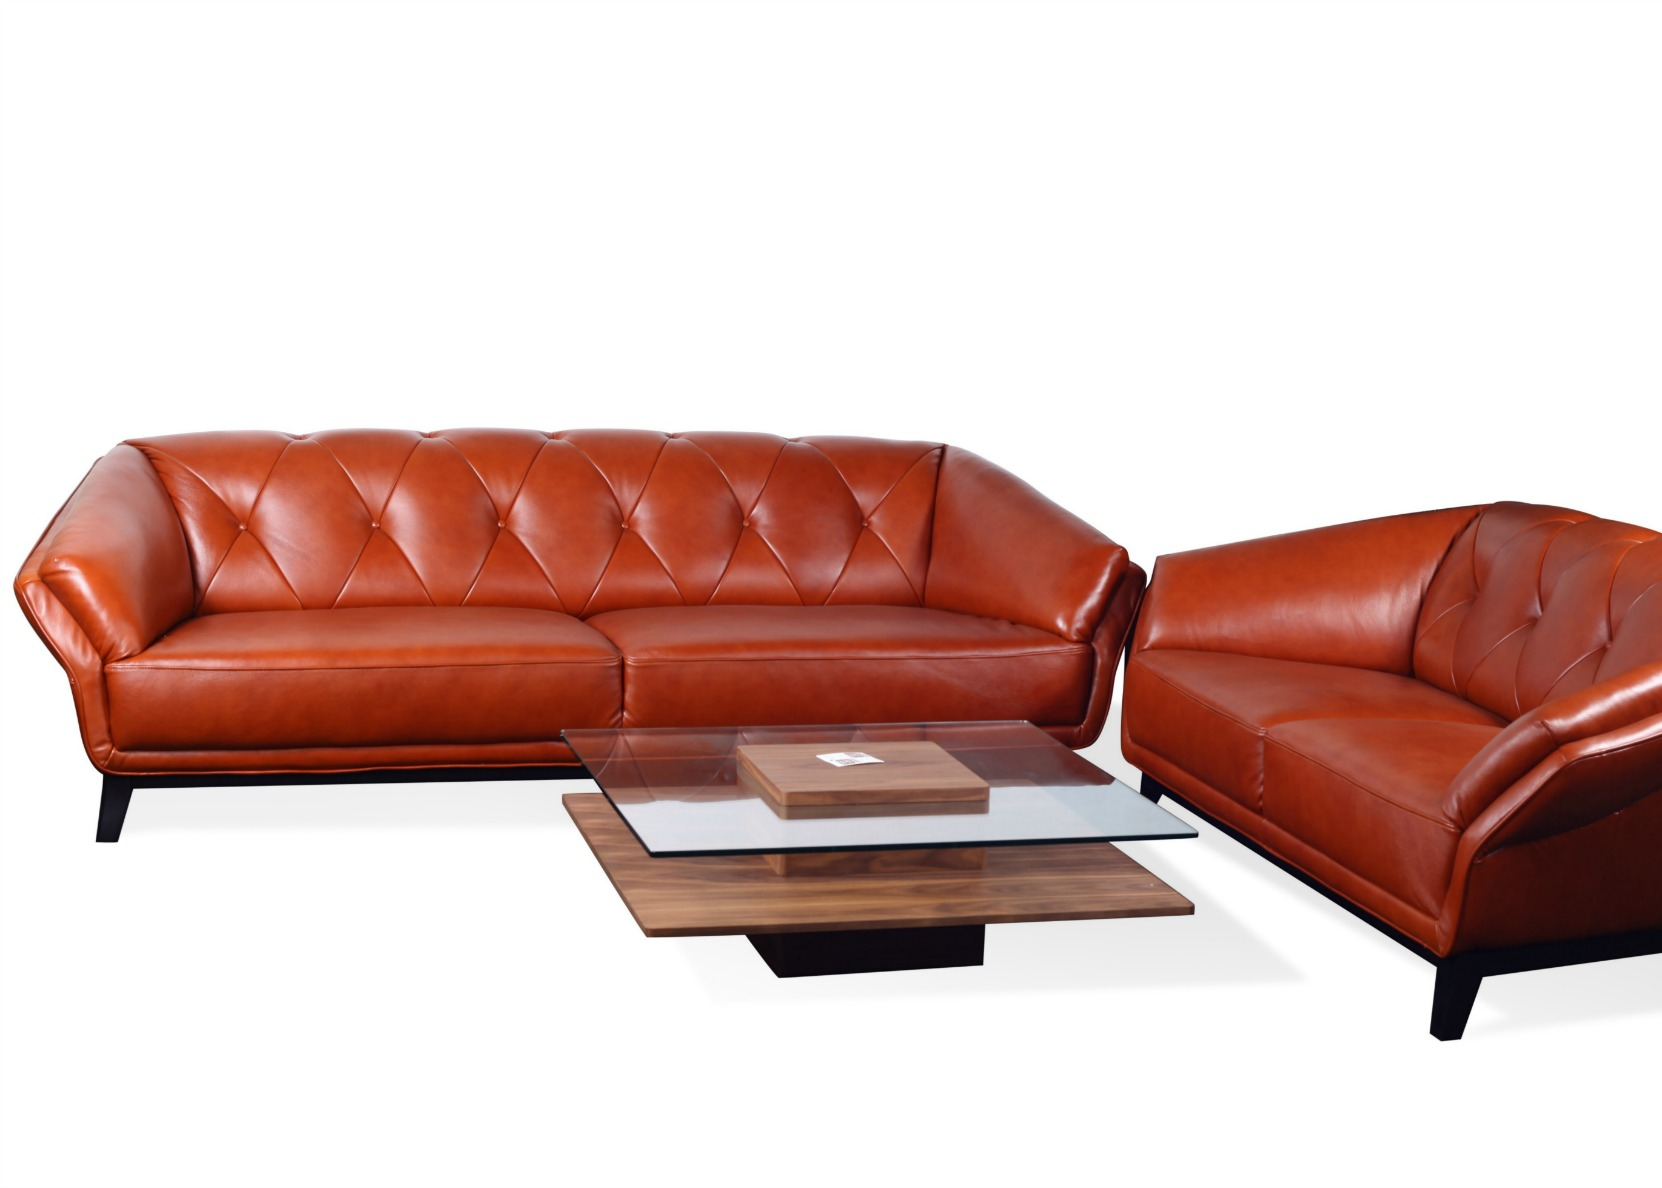 3 2 leather sofa set hay mags london 432 in tan and wood not just brown